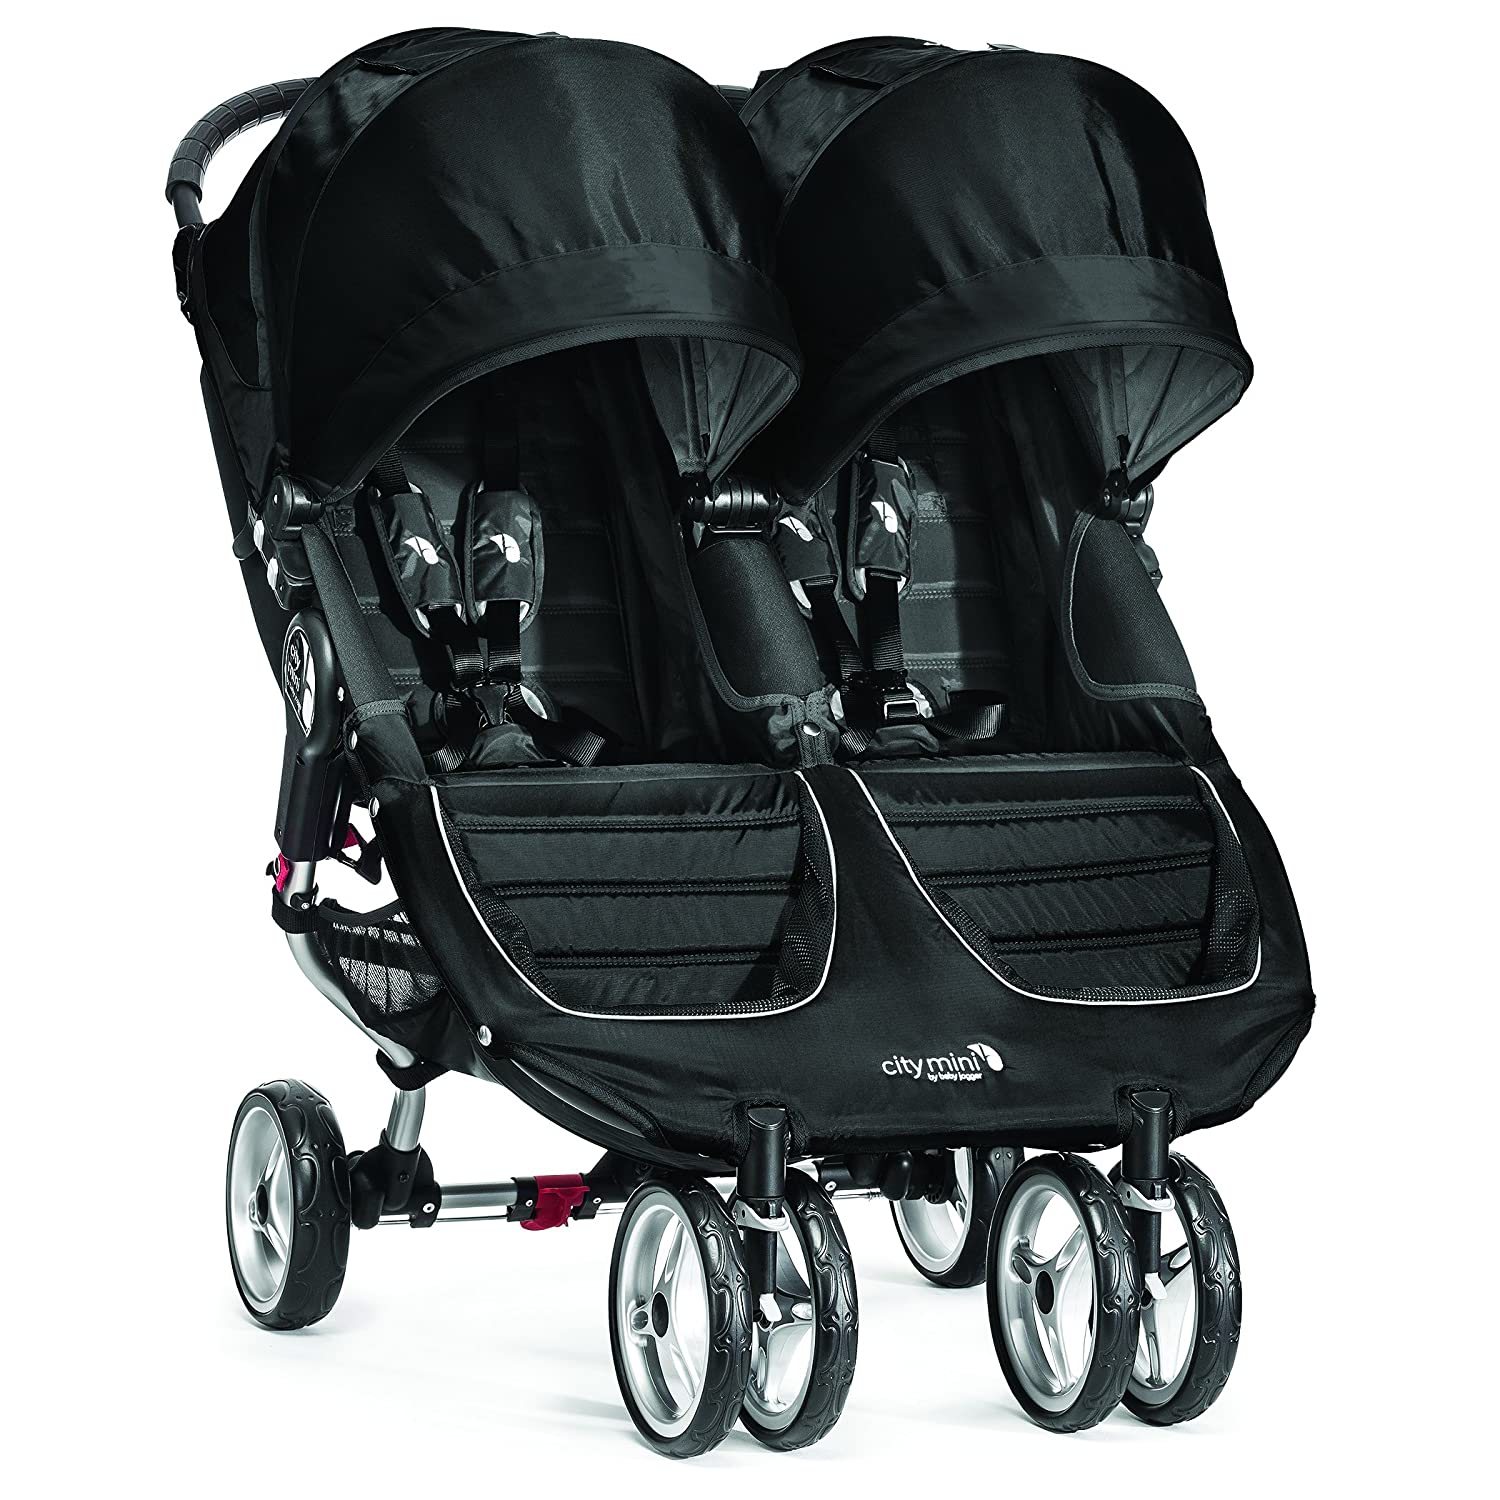 Baby Jogger City Mini Double Stroller – 2016 Compact, Lightweight Double Stroller Quick Fold Baby Stroller, Black Gray